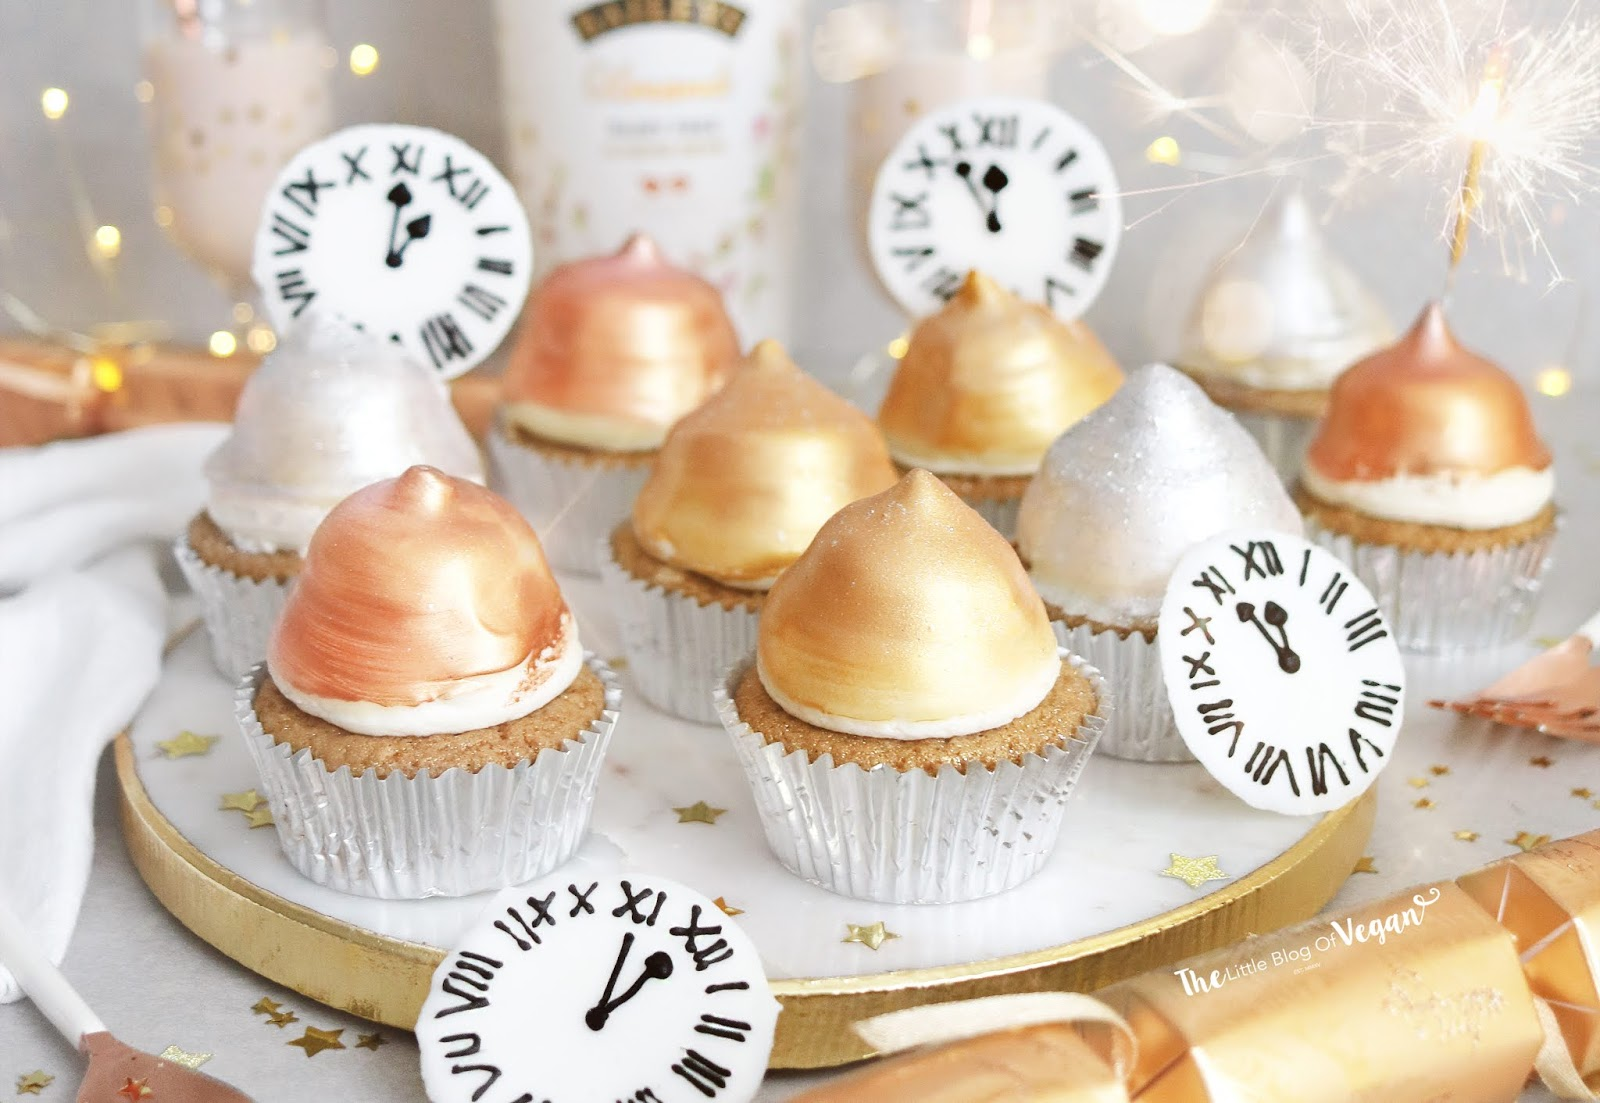 White chocolate Baileys New Year cupcakes